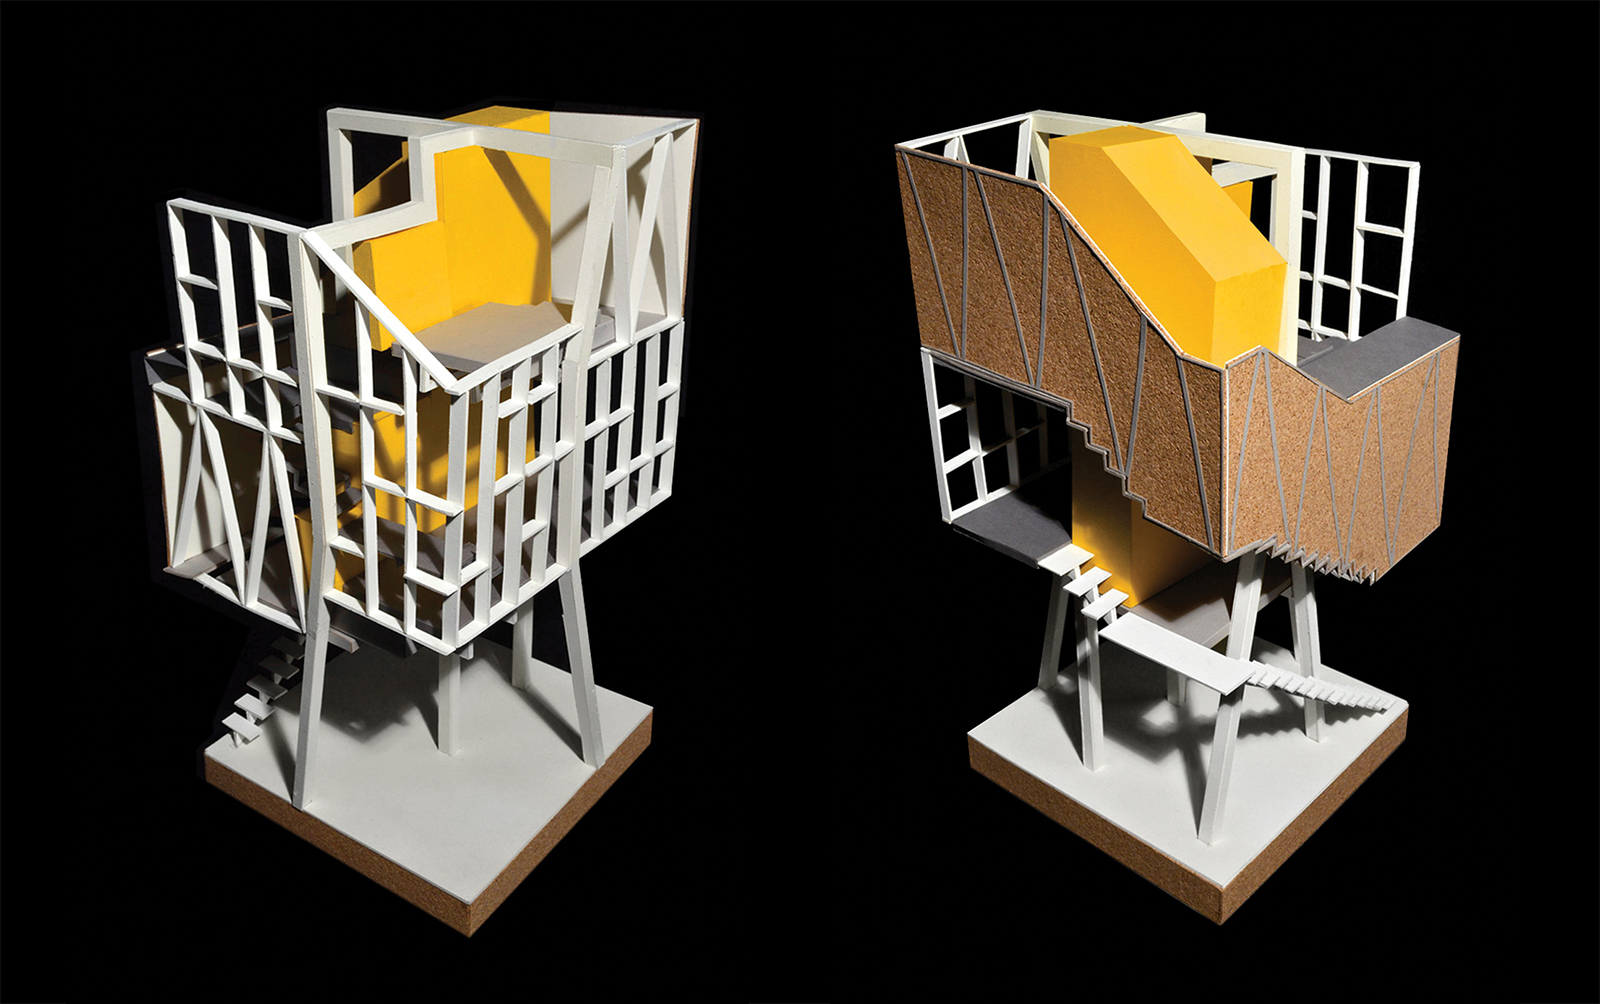 Models of the CTST infill housing prototype showing the structural grid skin that doubles as storage and enclosure